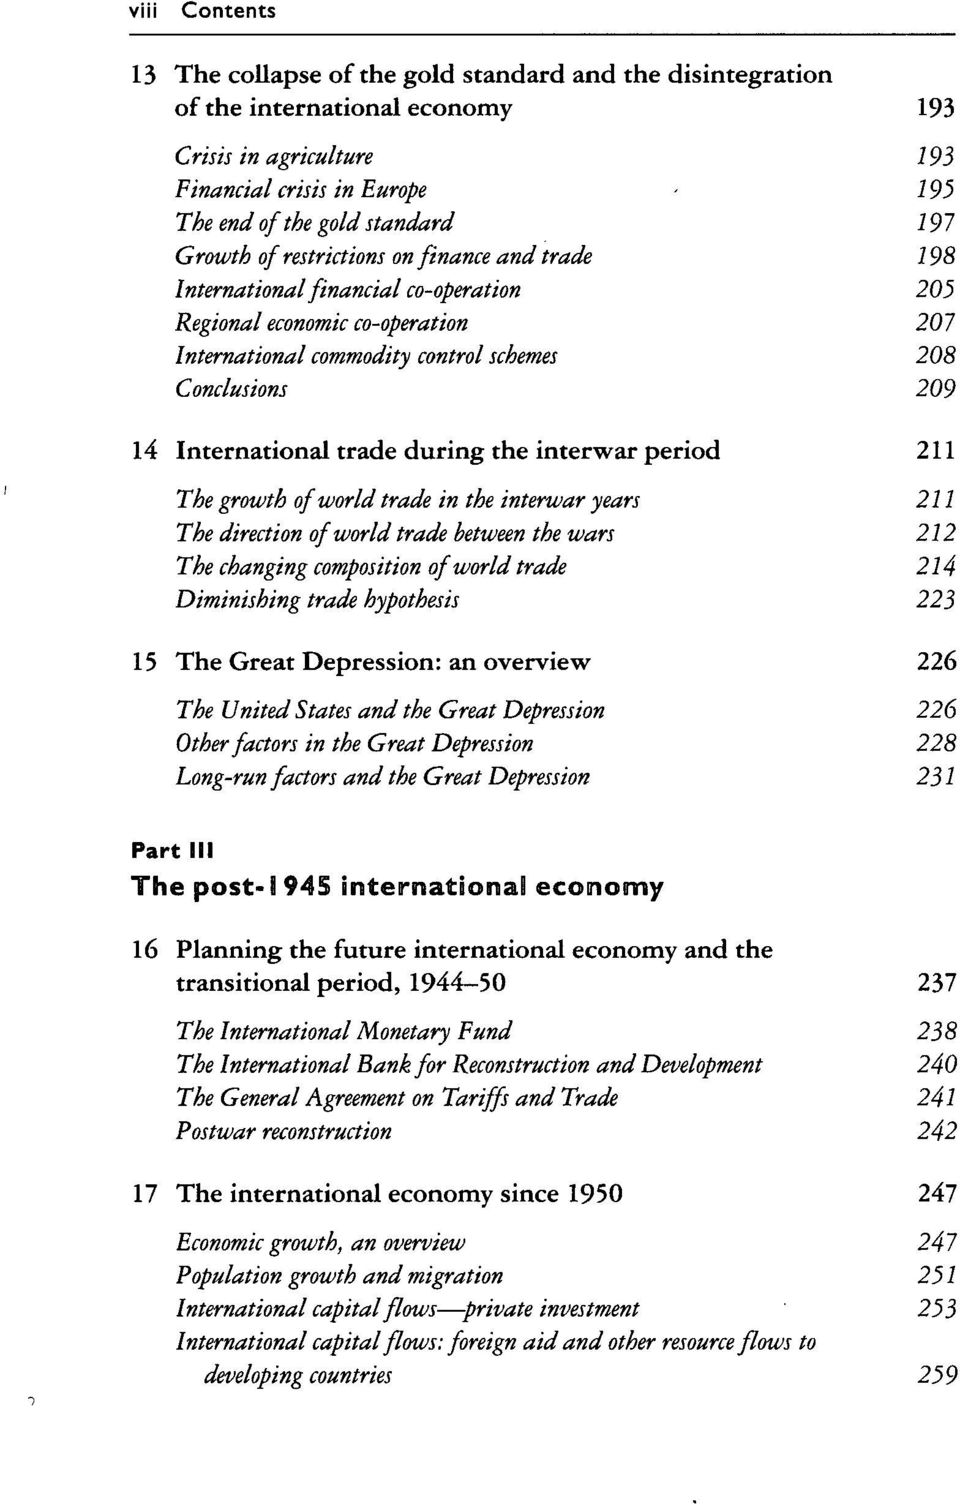 International trade during the interwar period 211 The growth of world trade in the interwar years 211 The direction of world trade between the wars 212 The changing composition of world trade 214